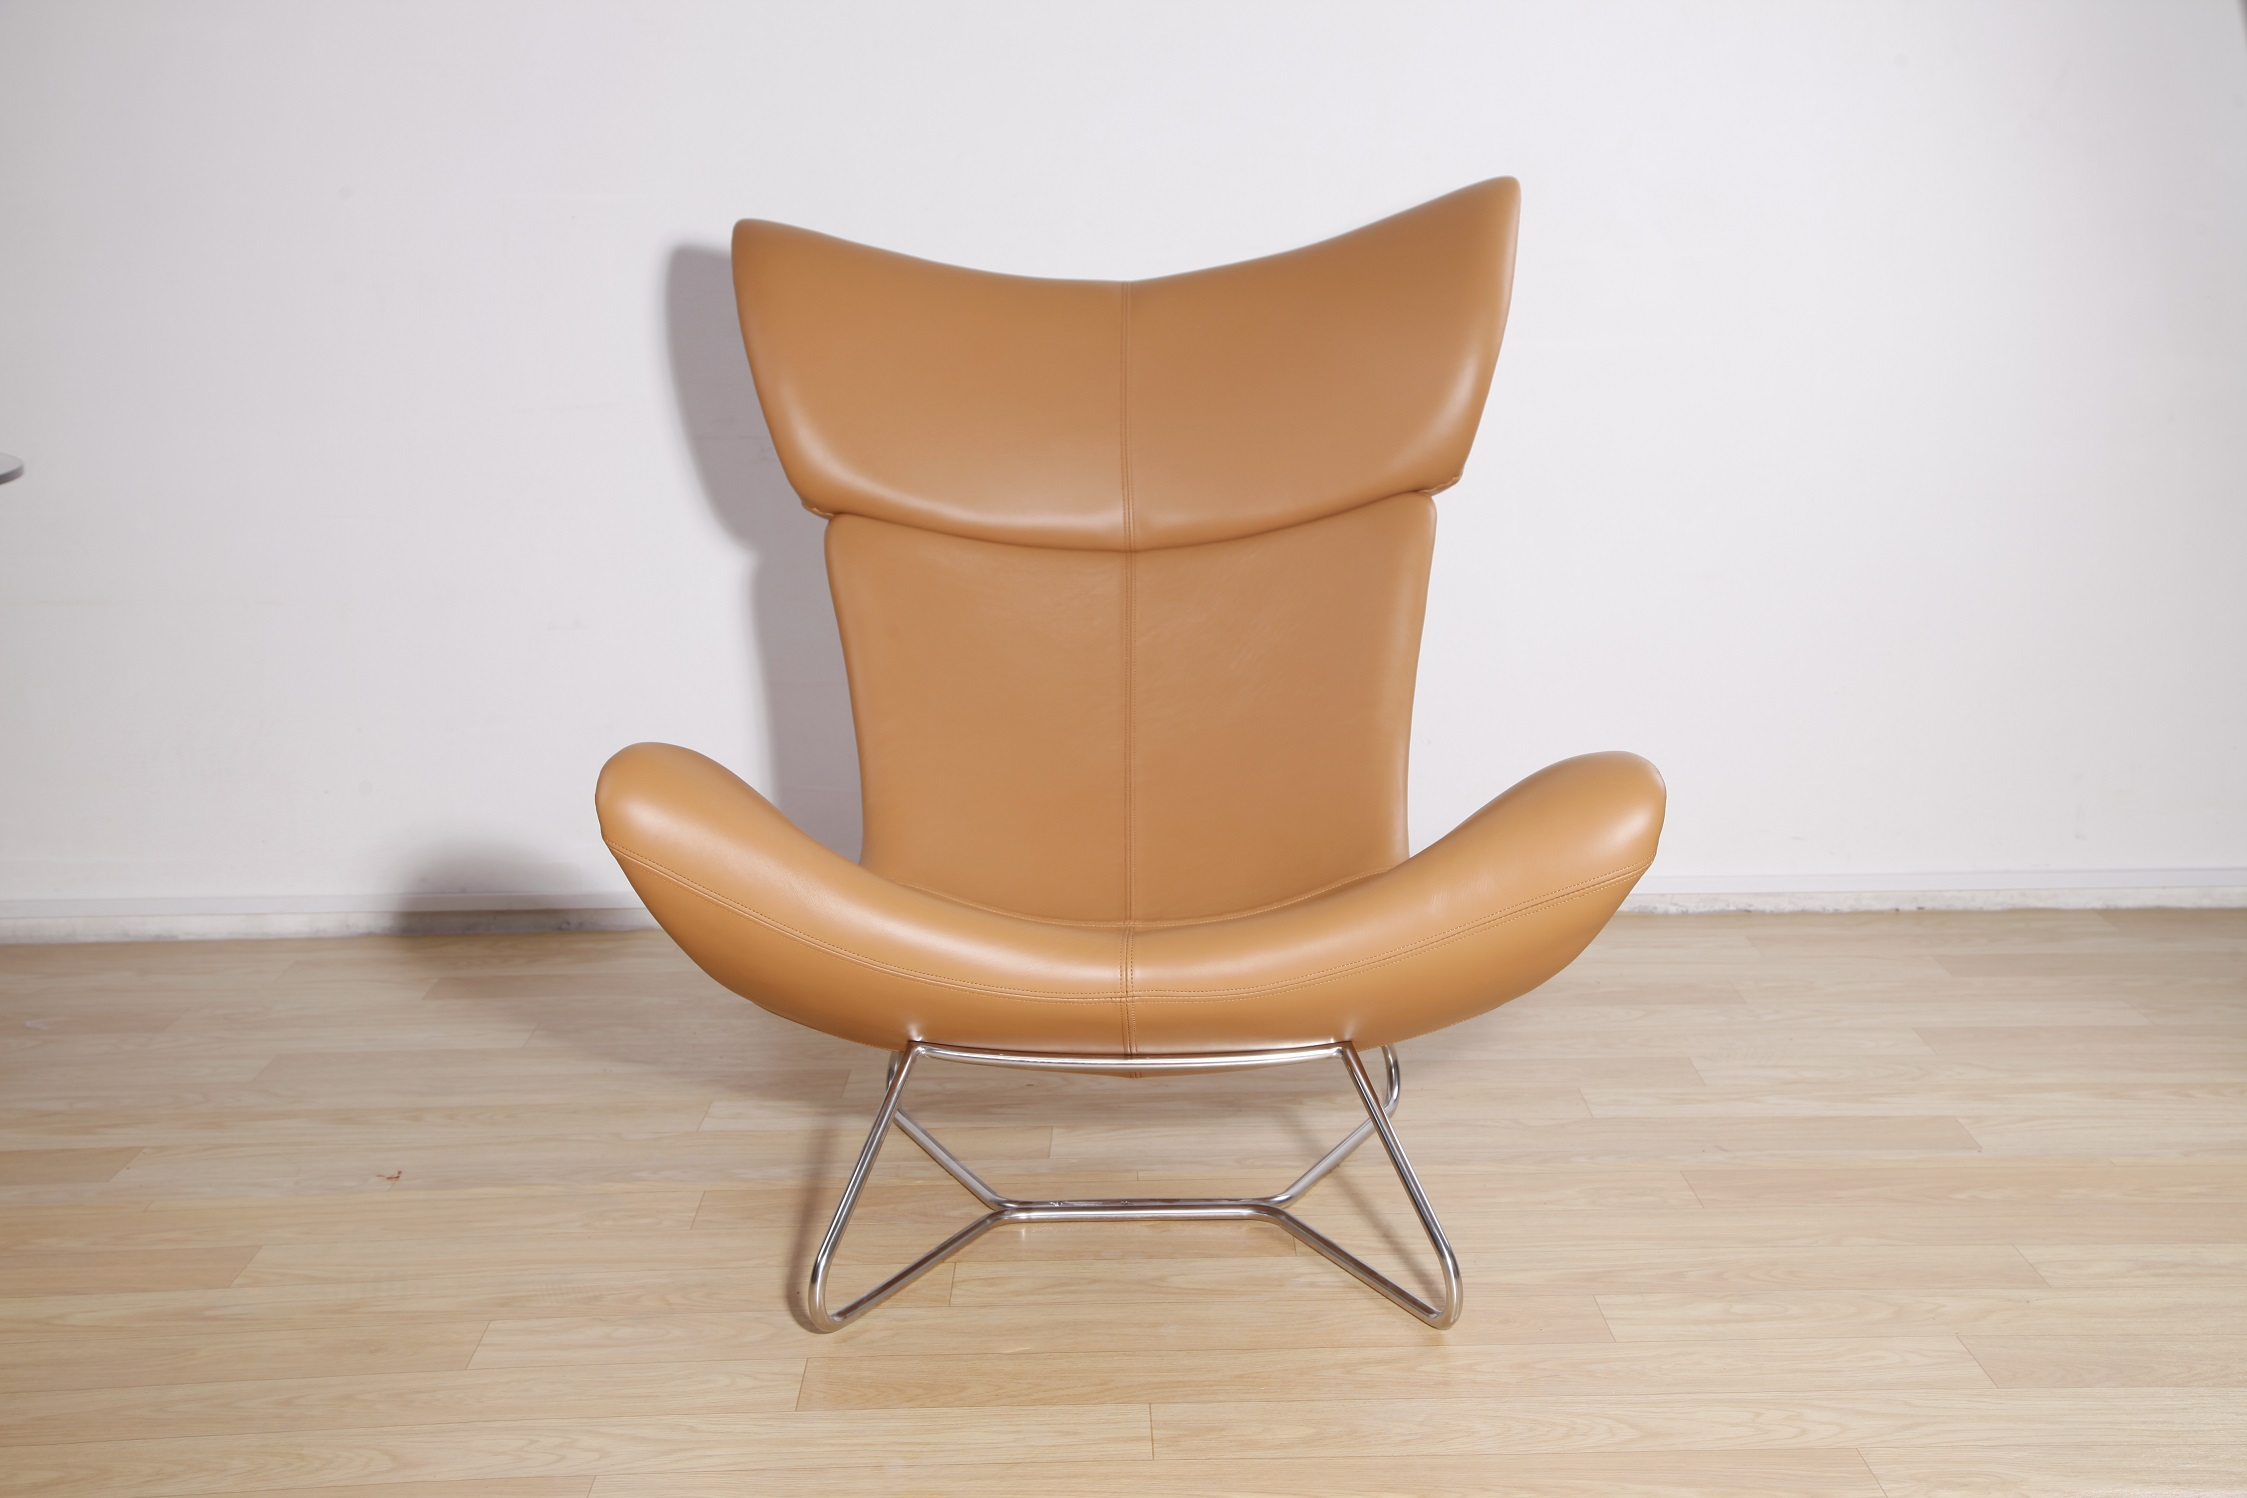 imola chair replica